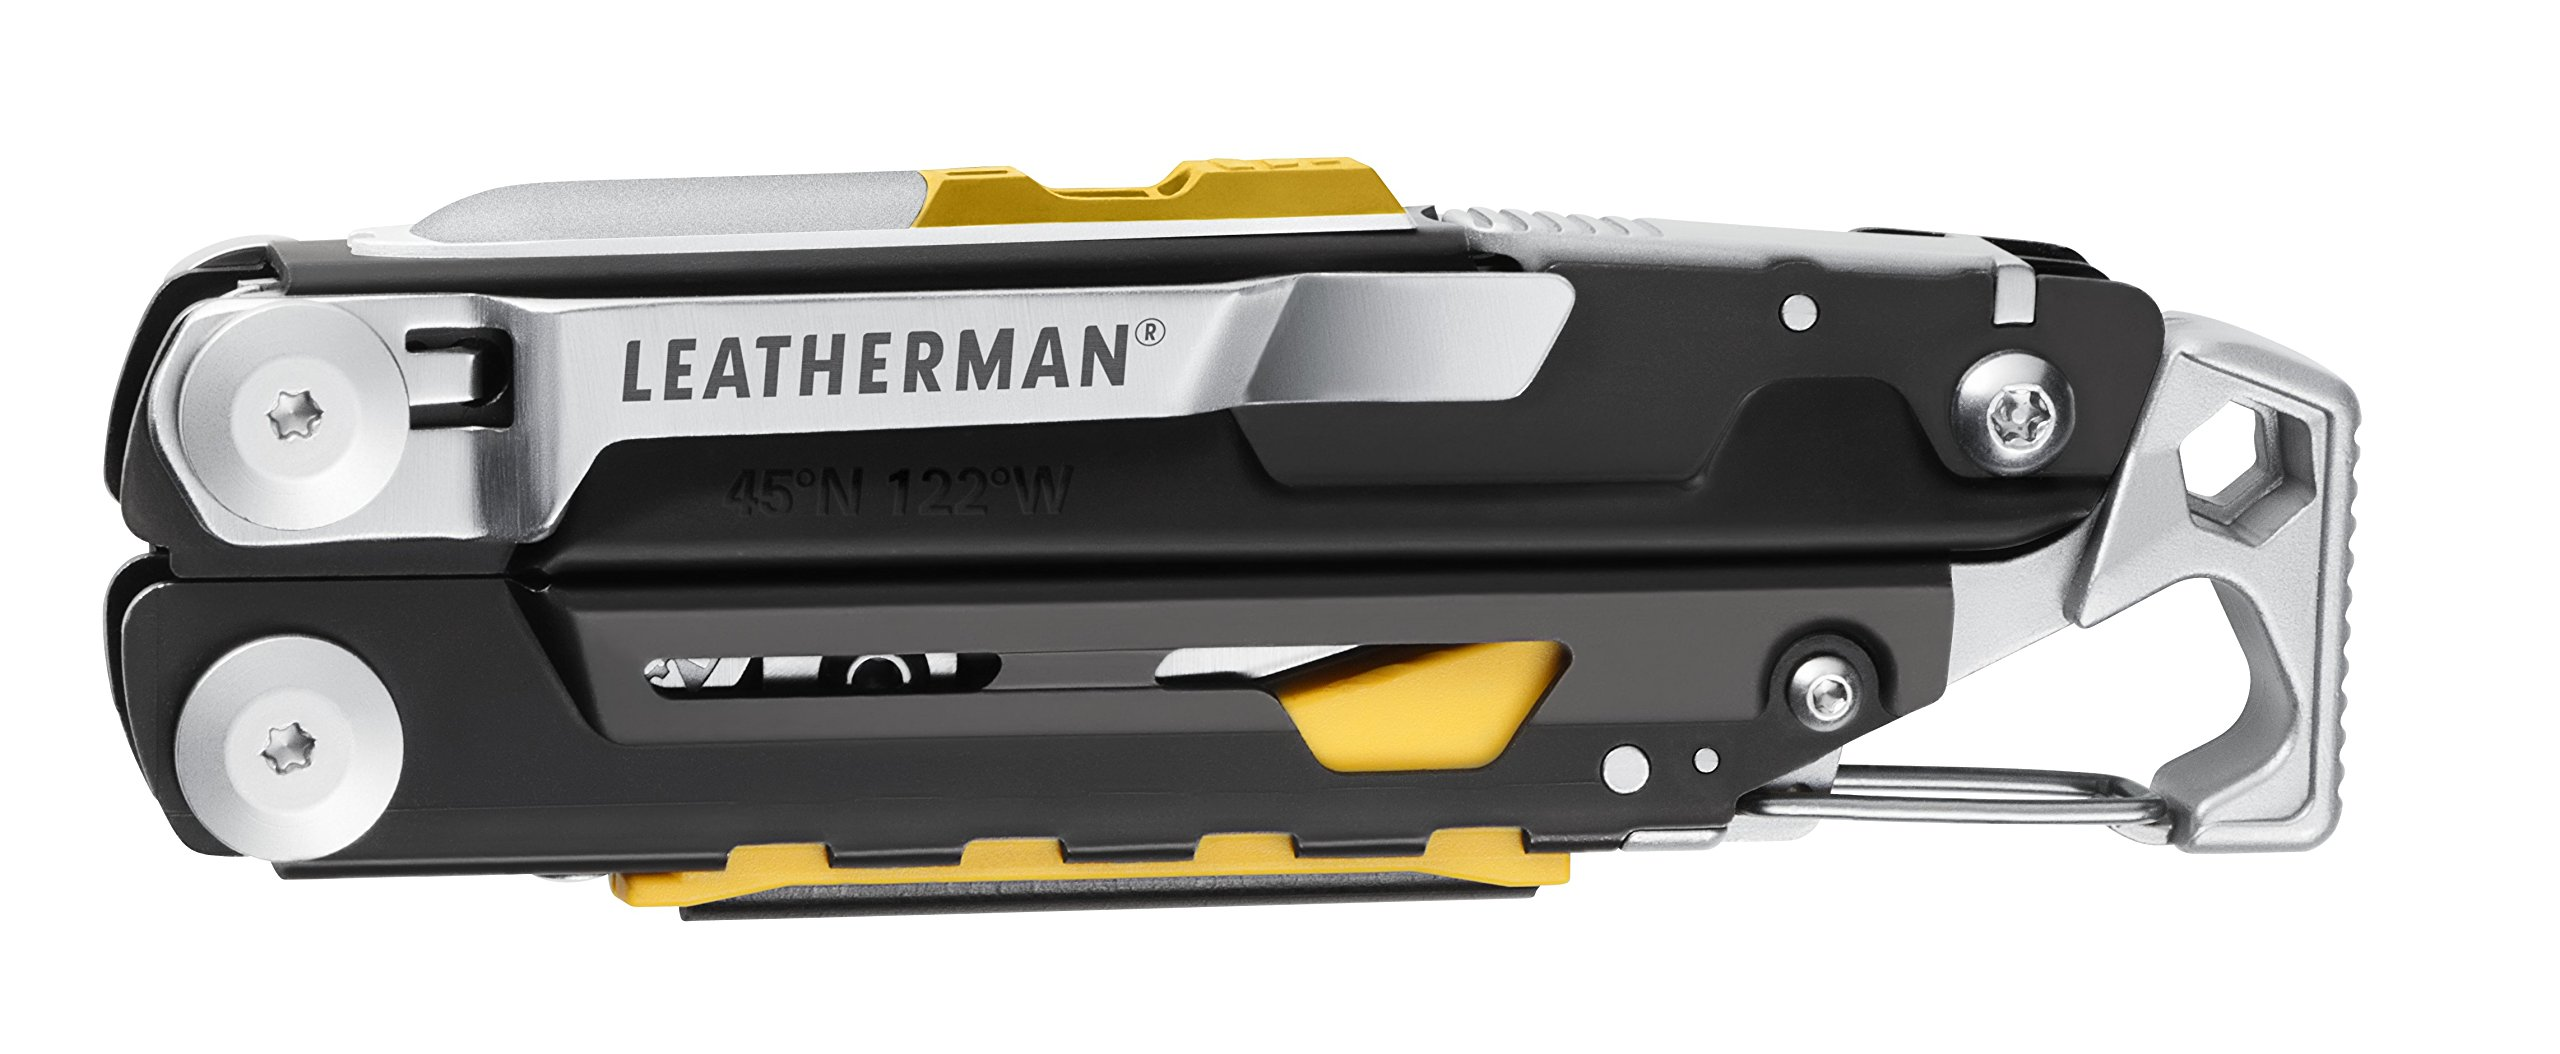 LEATHERMAN - Signal Camping Multitool with Fire Starter, Hammer, and Emergency Whistle, Stainless Steel by LEATHERMAN (Image #8)